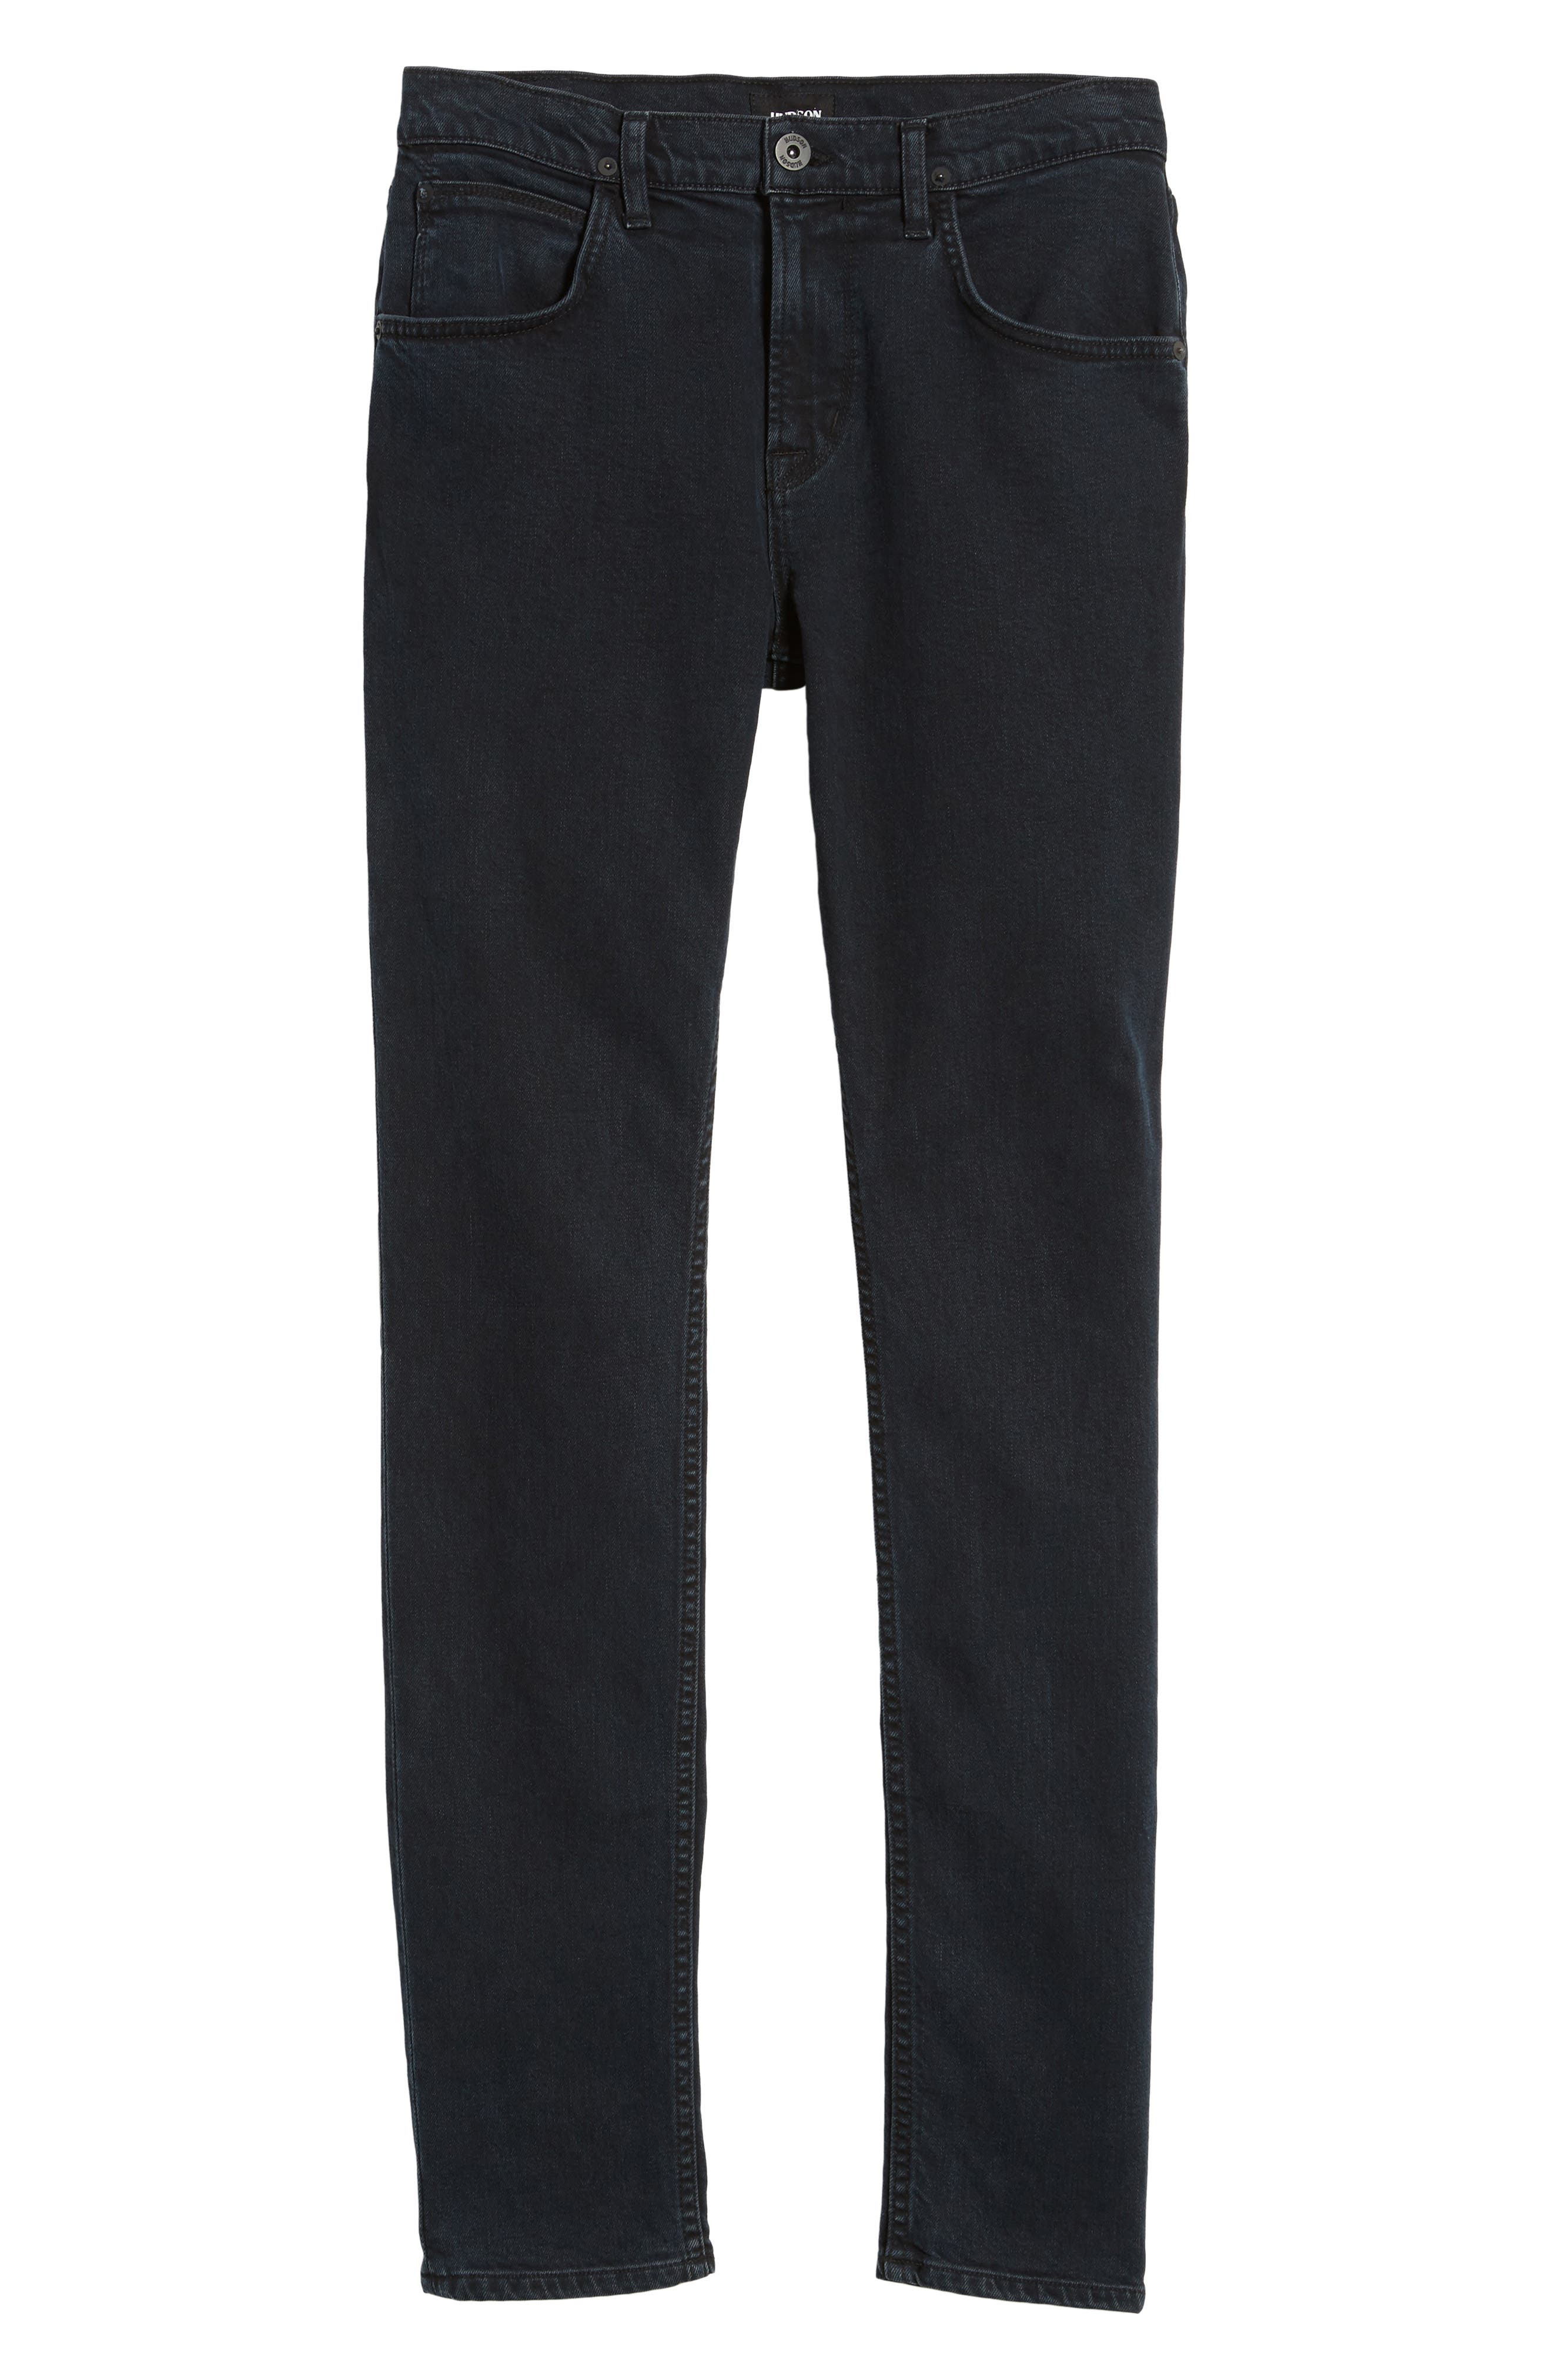 Axl Skinny Fit Jeans,                             Alternate thumbnail 6, color,